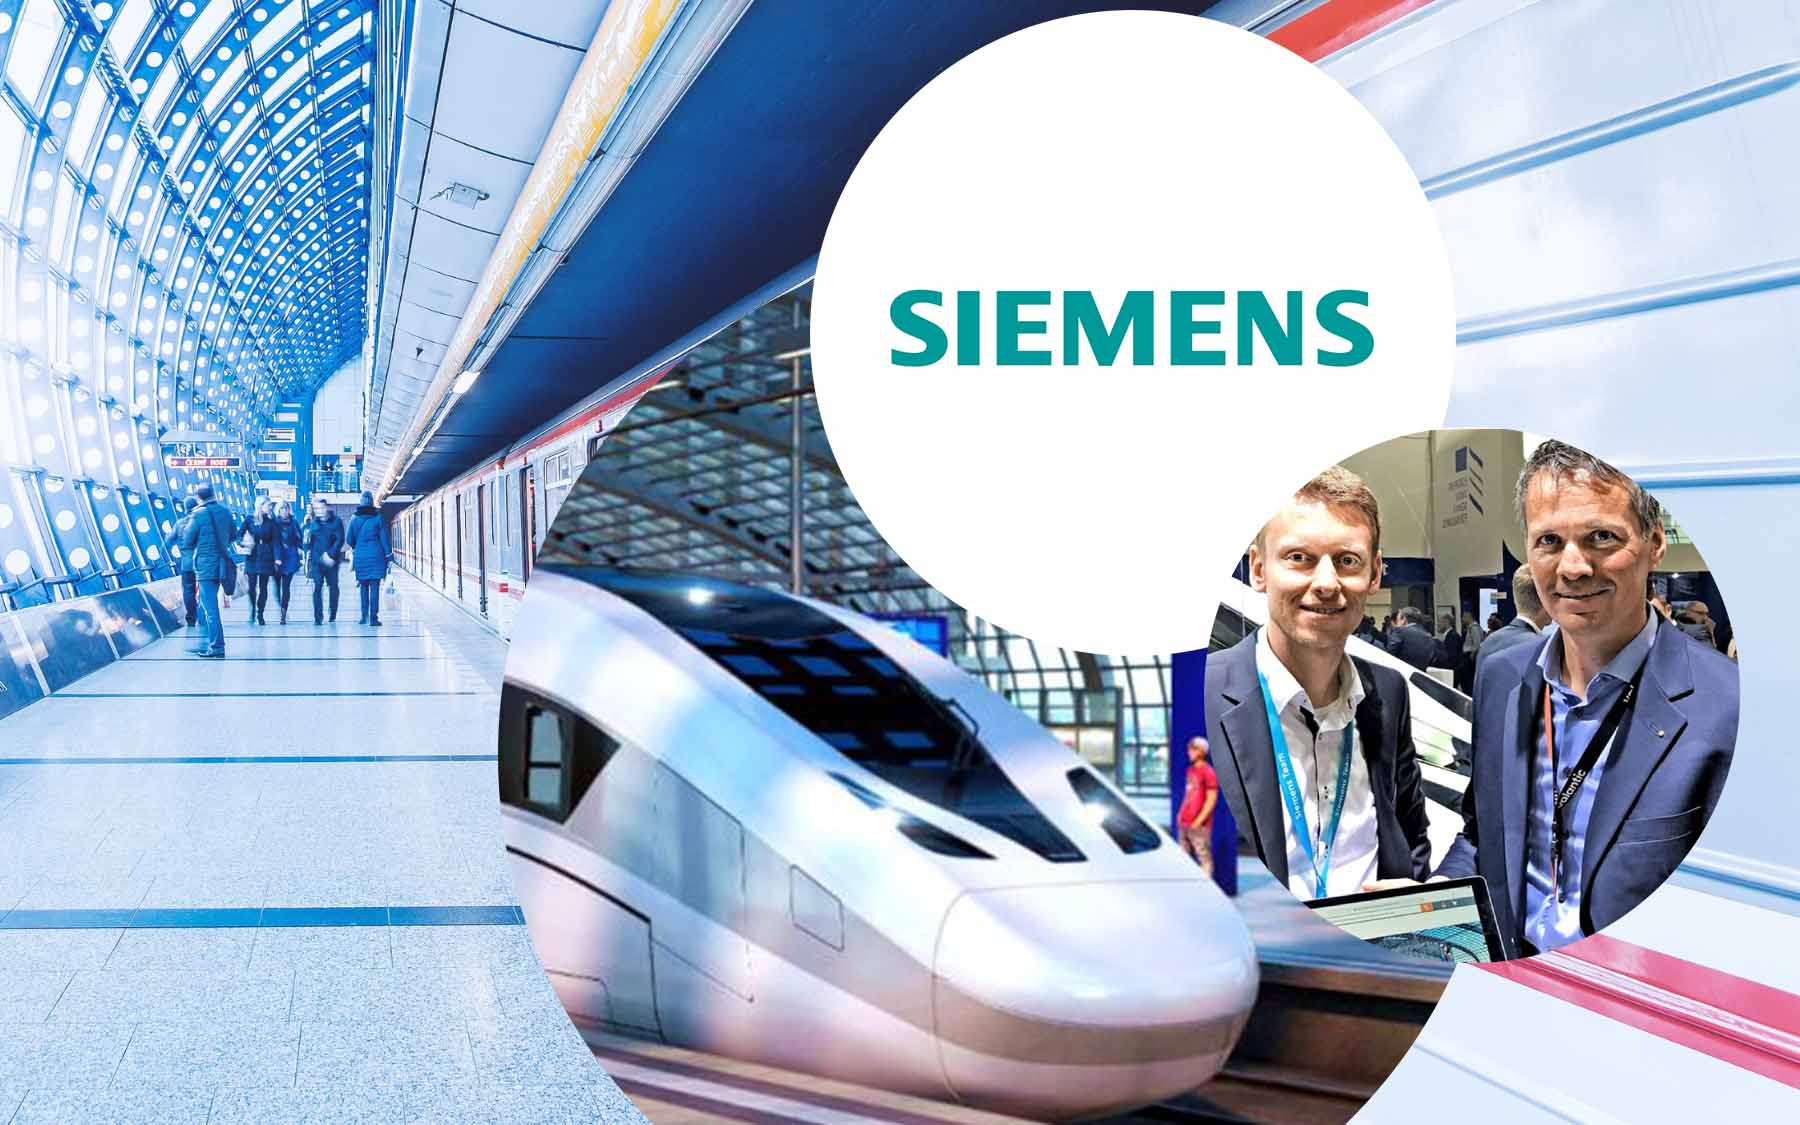 Logo of Siemens AG, next to it a picture of two men at an event and behind it pictures of a train and a station, valantic Siemens digital marketplace